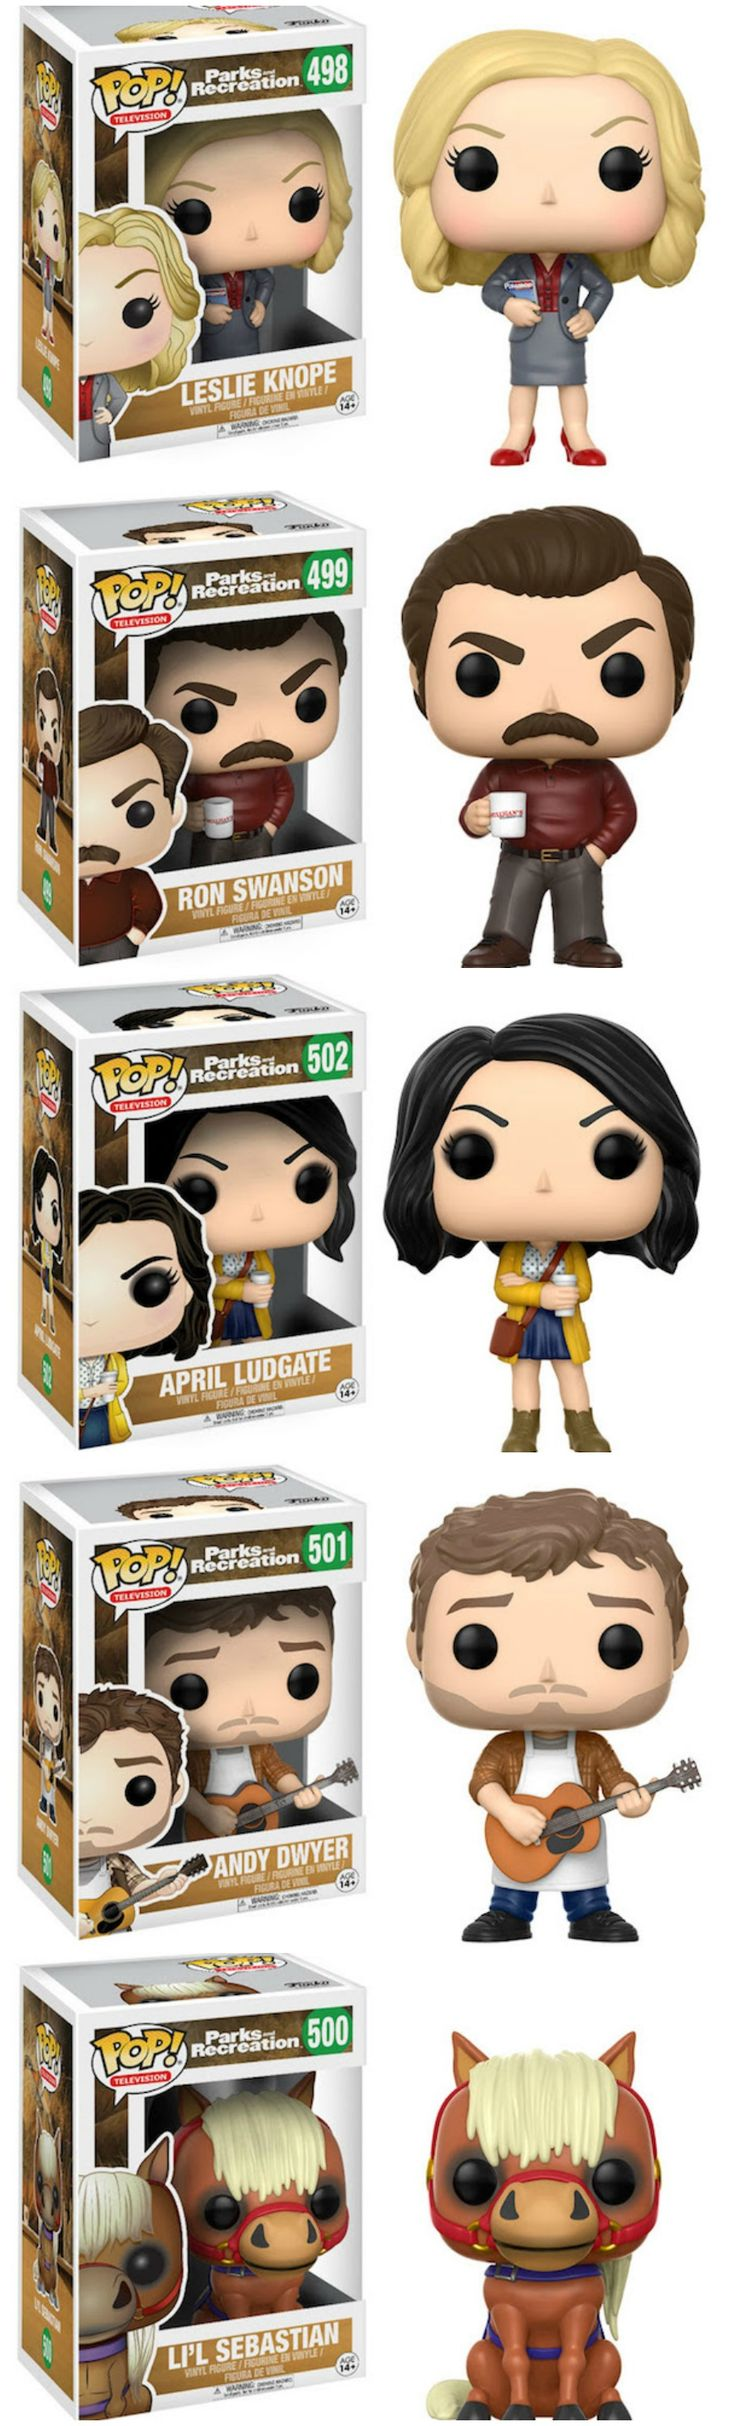 Treat Yo' Self To 'Parks And Rec' Funko Pop Figures